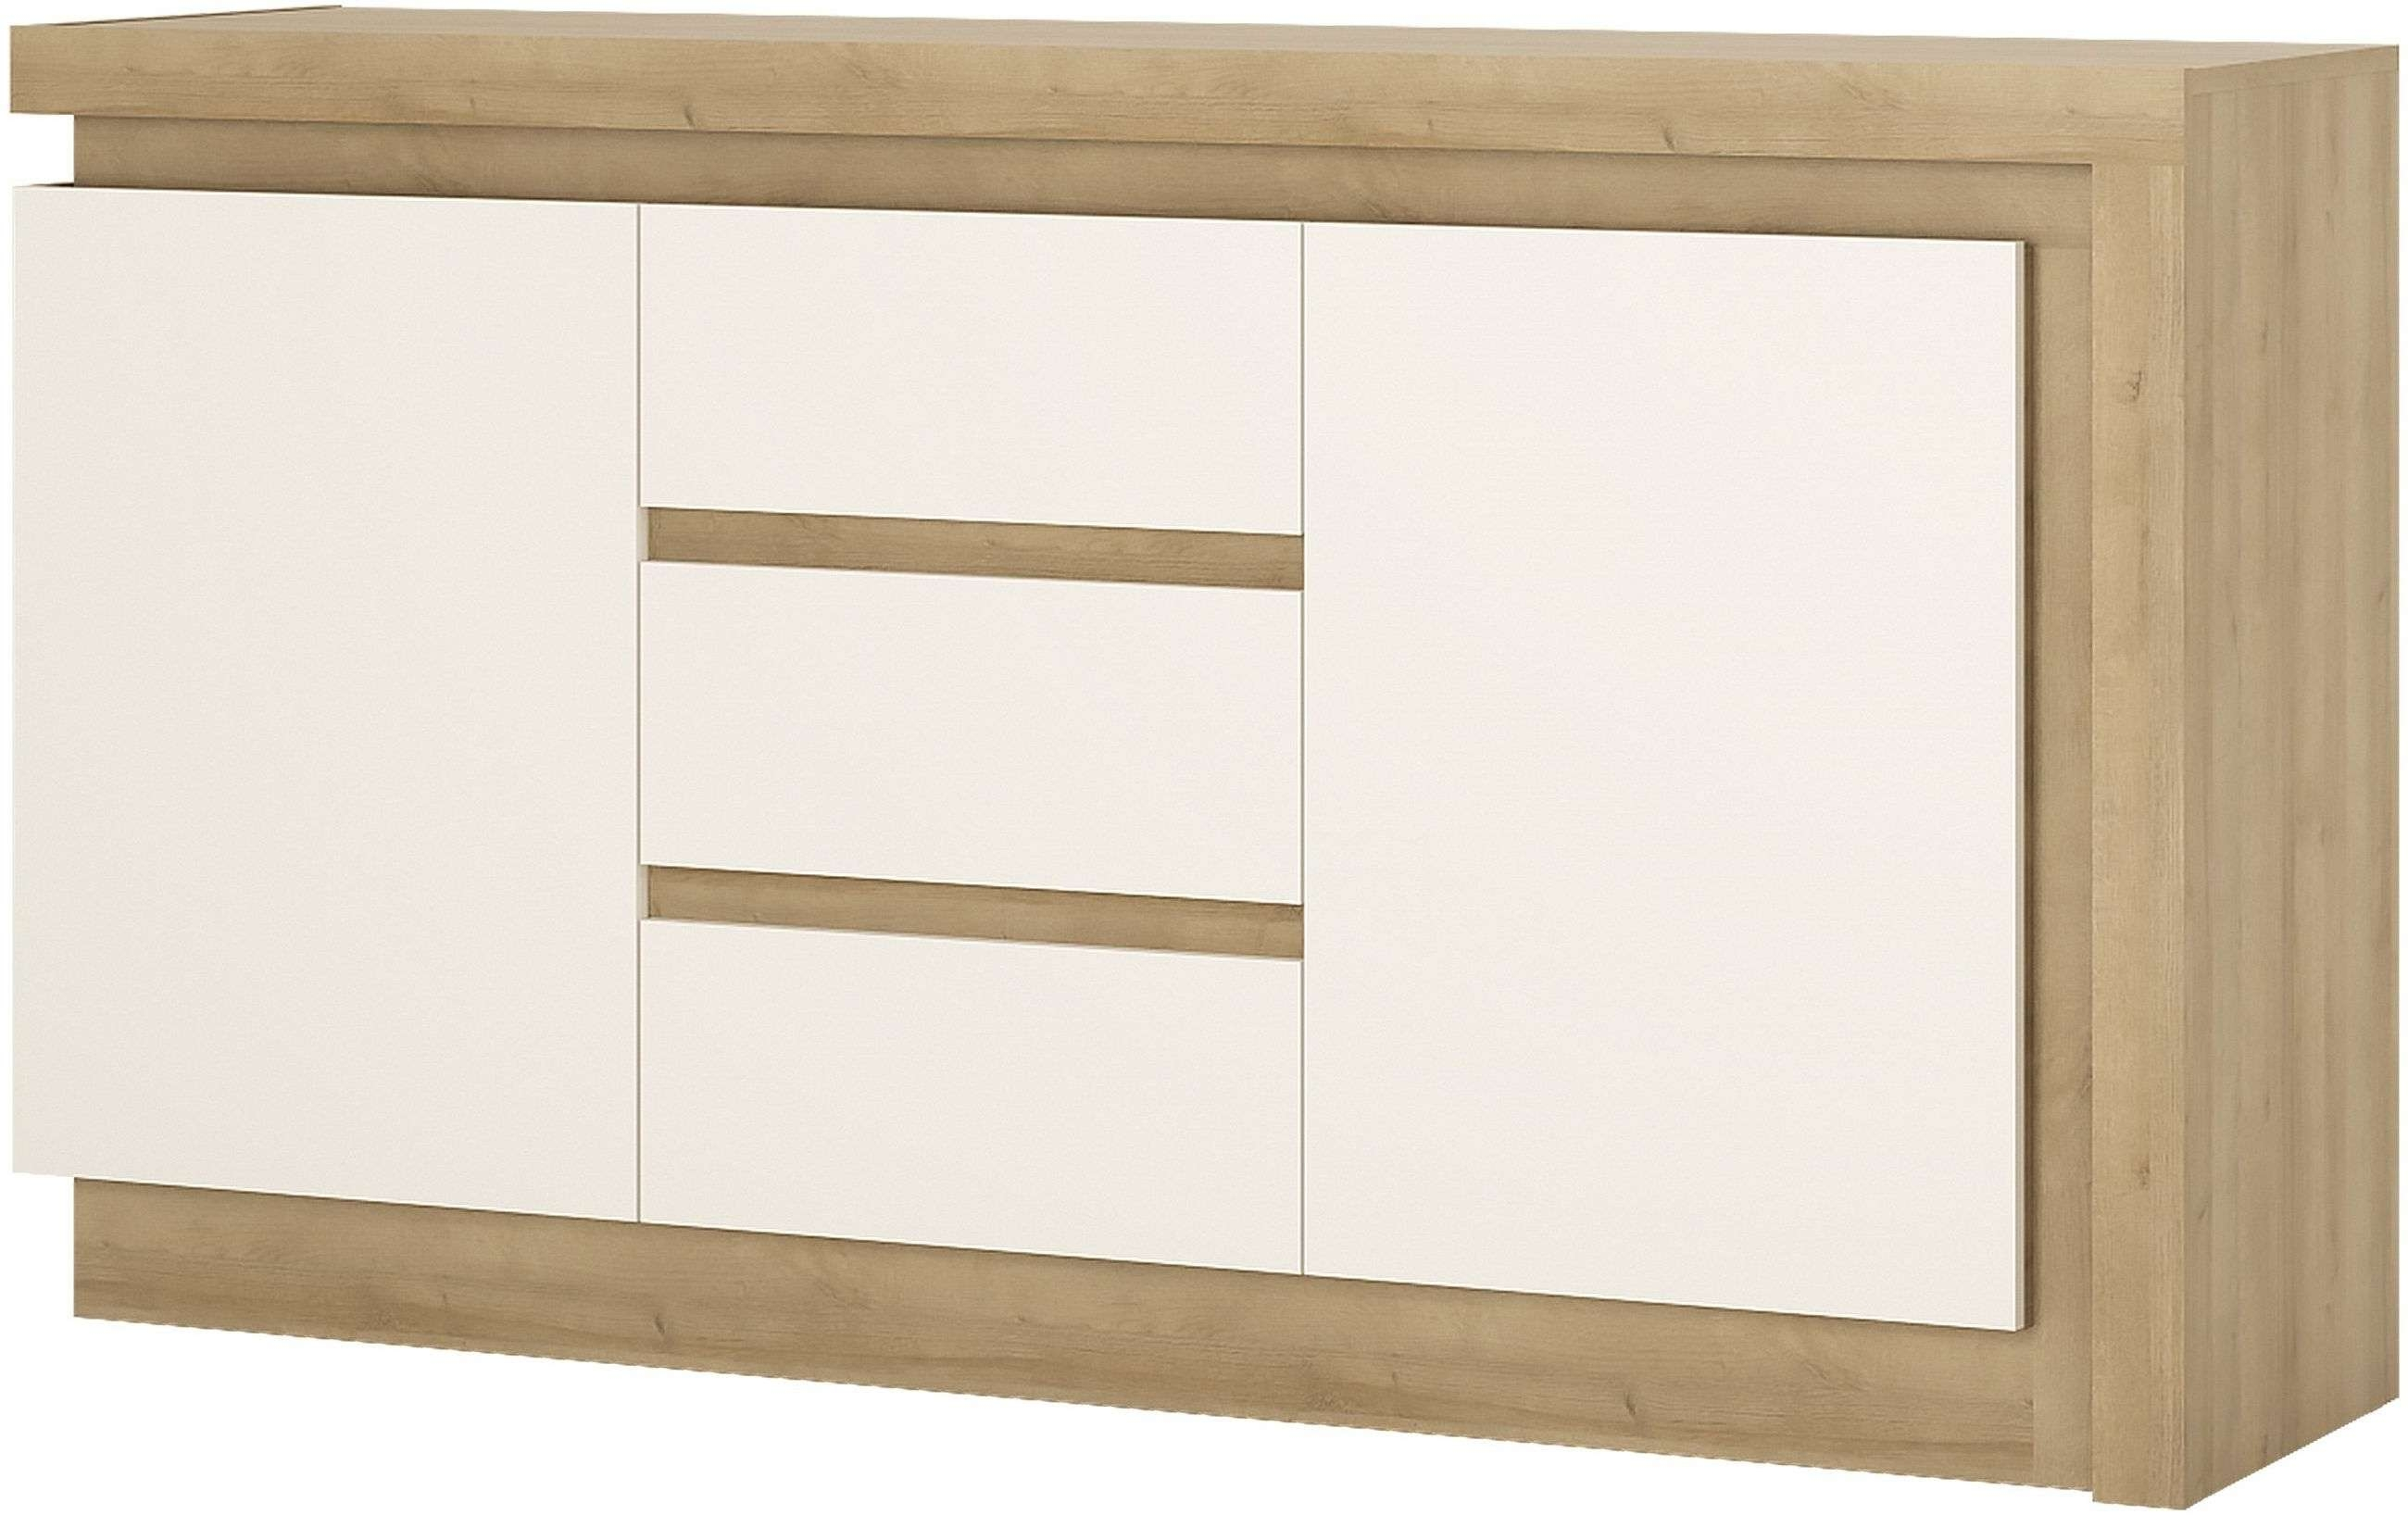 Buy Lyon Riviera Oak And White High Gloss Sideboard – 2 Door 3 Inside High Gloss Sideboards (View 2 of 20)